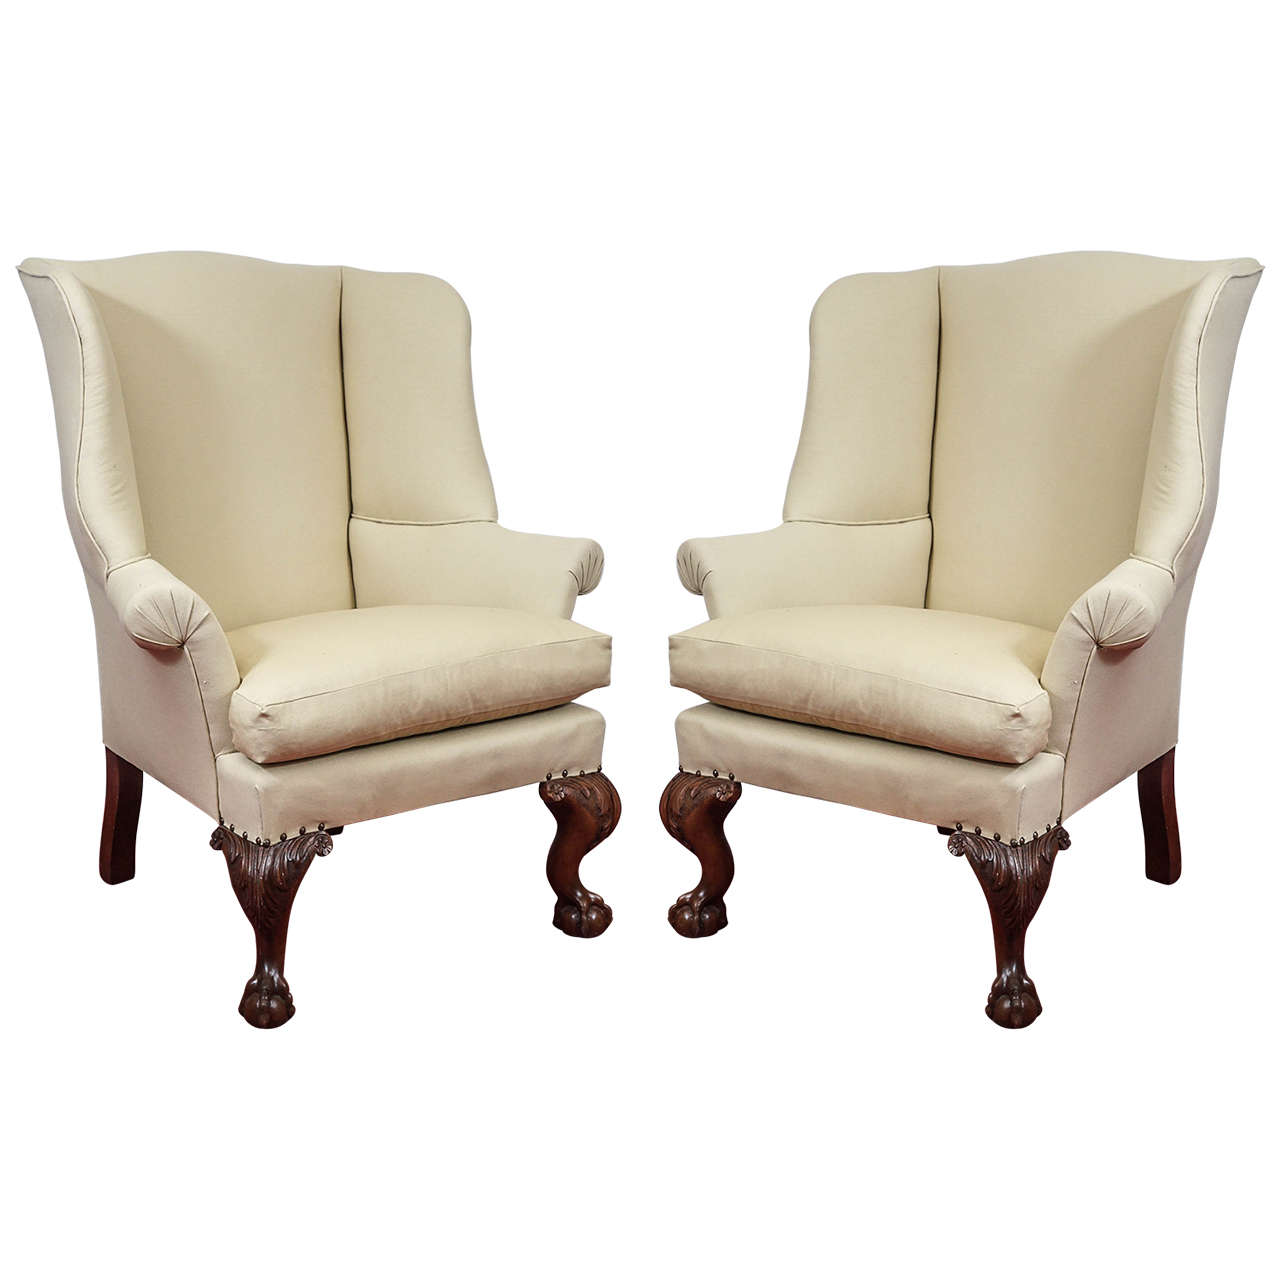 Pair of George II Wingback Chairs For Sale